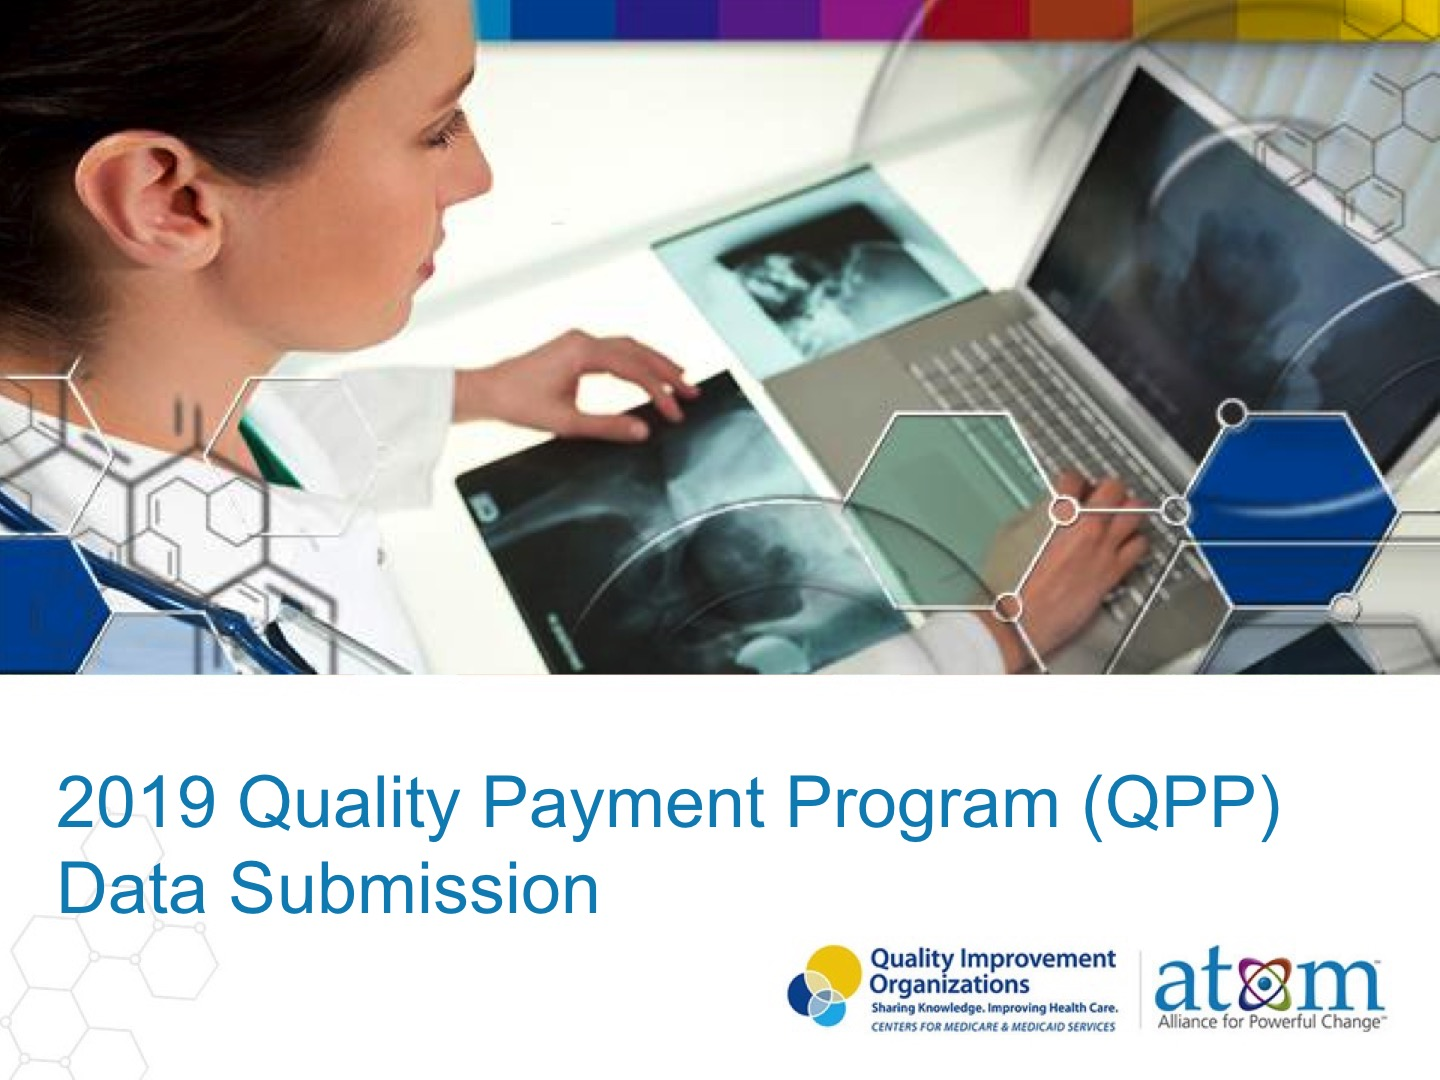 2019 Quality Payment Program (QPP) Data Submission